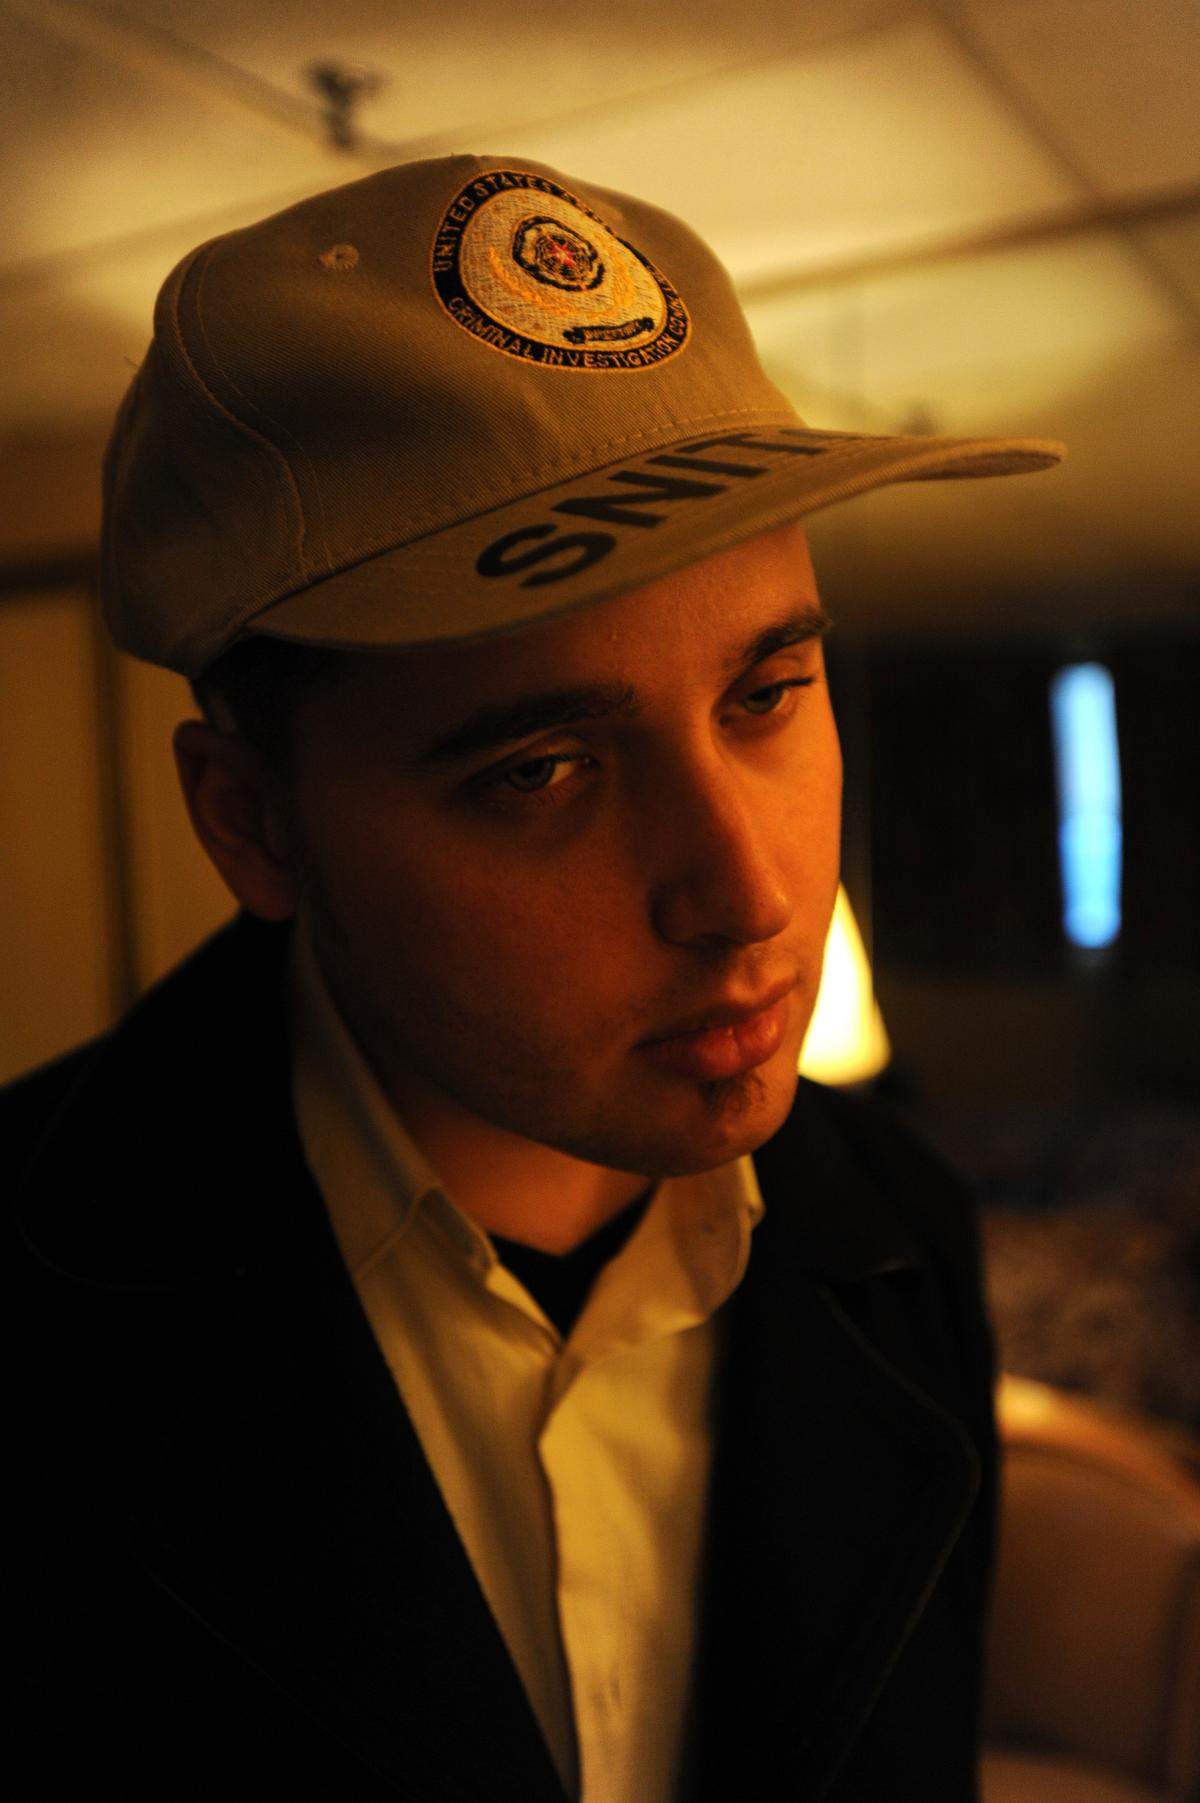 Adrian Lamo in a motel room on Long Island, N.Y. Lamo tried to make light of his reputation as a snitch, even wearing a hat that labeled him as such.